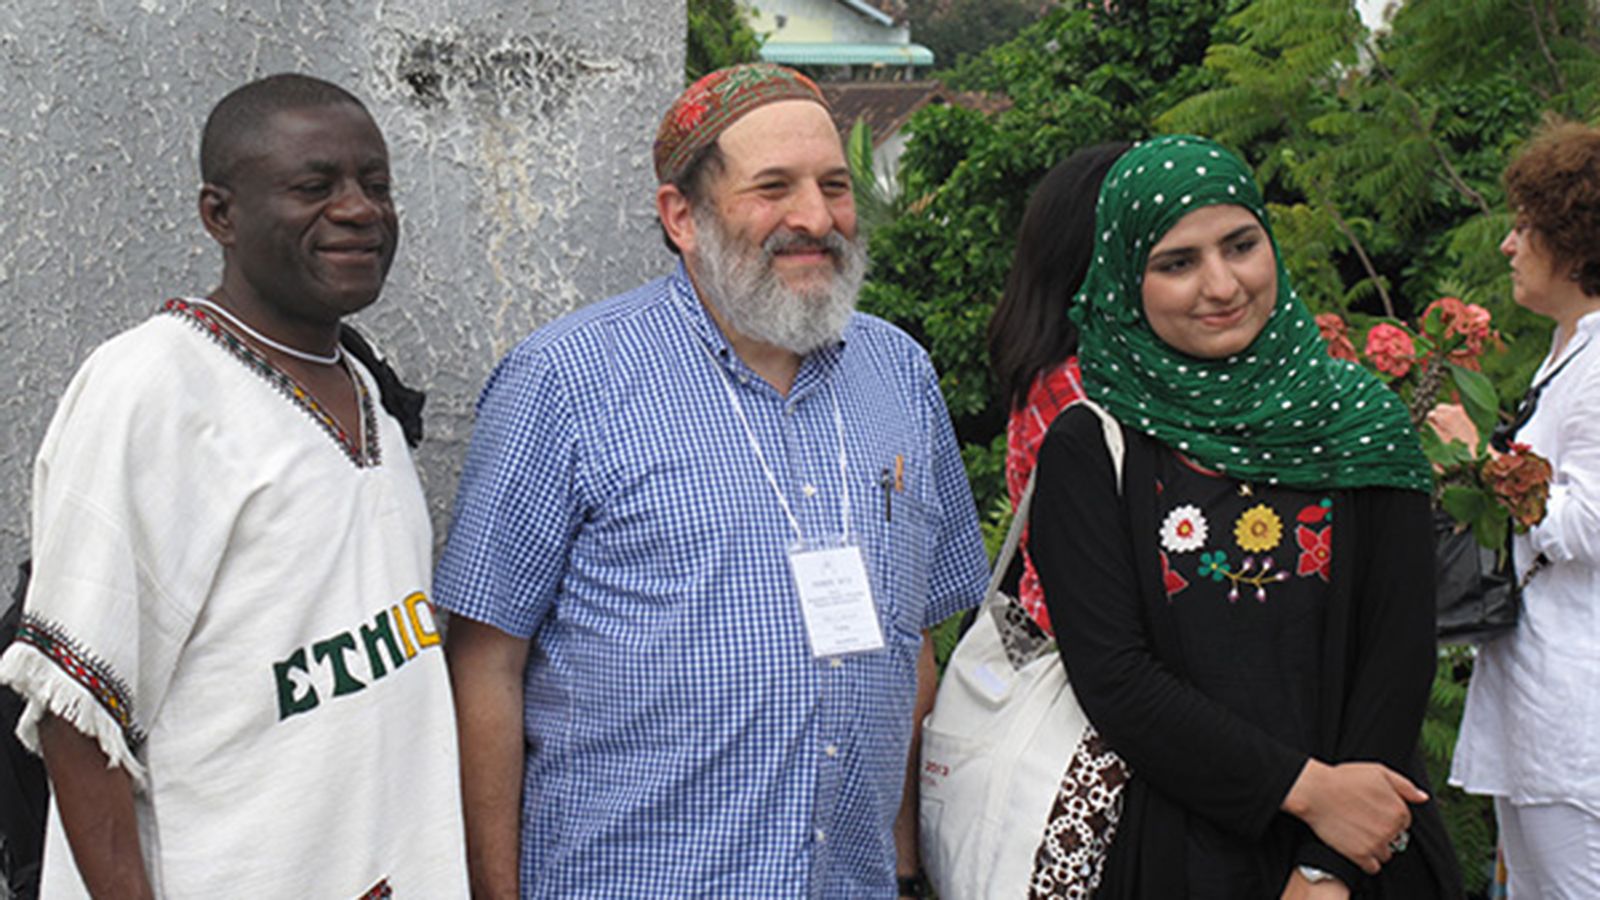 Adam Seligman with CEDAR program participants in 2012.